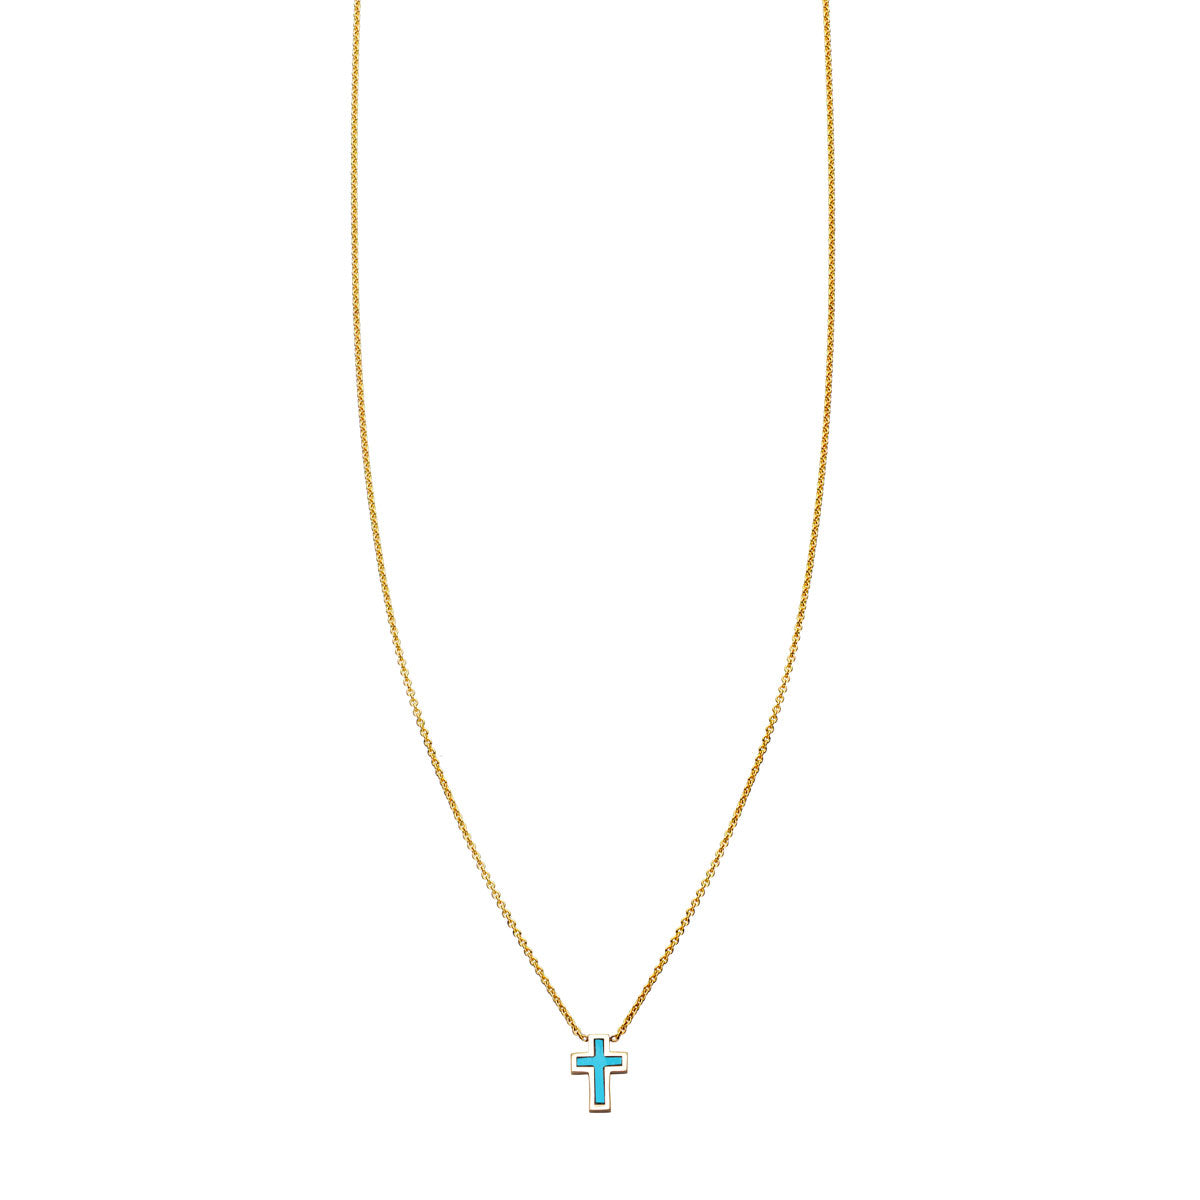 Image of Turquoise Inlaid Cross Necklace